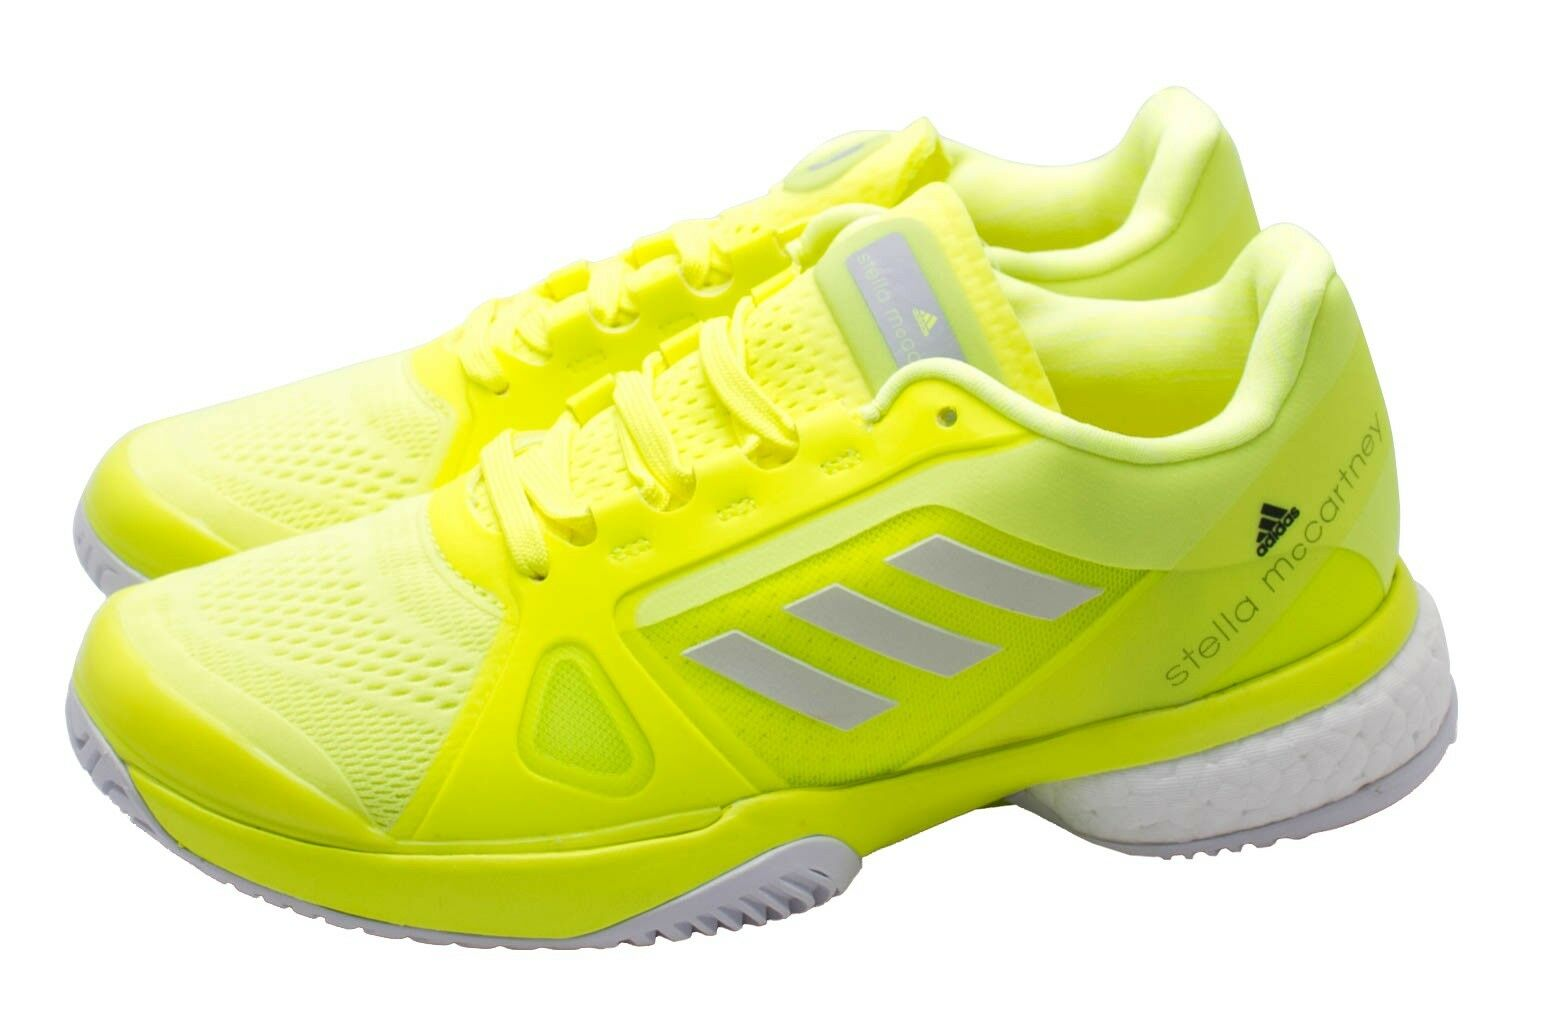 Adidas Donna Tennis Stella McCartney Barricade Shoes Yellow BB5050 us 11.5 new